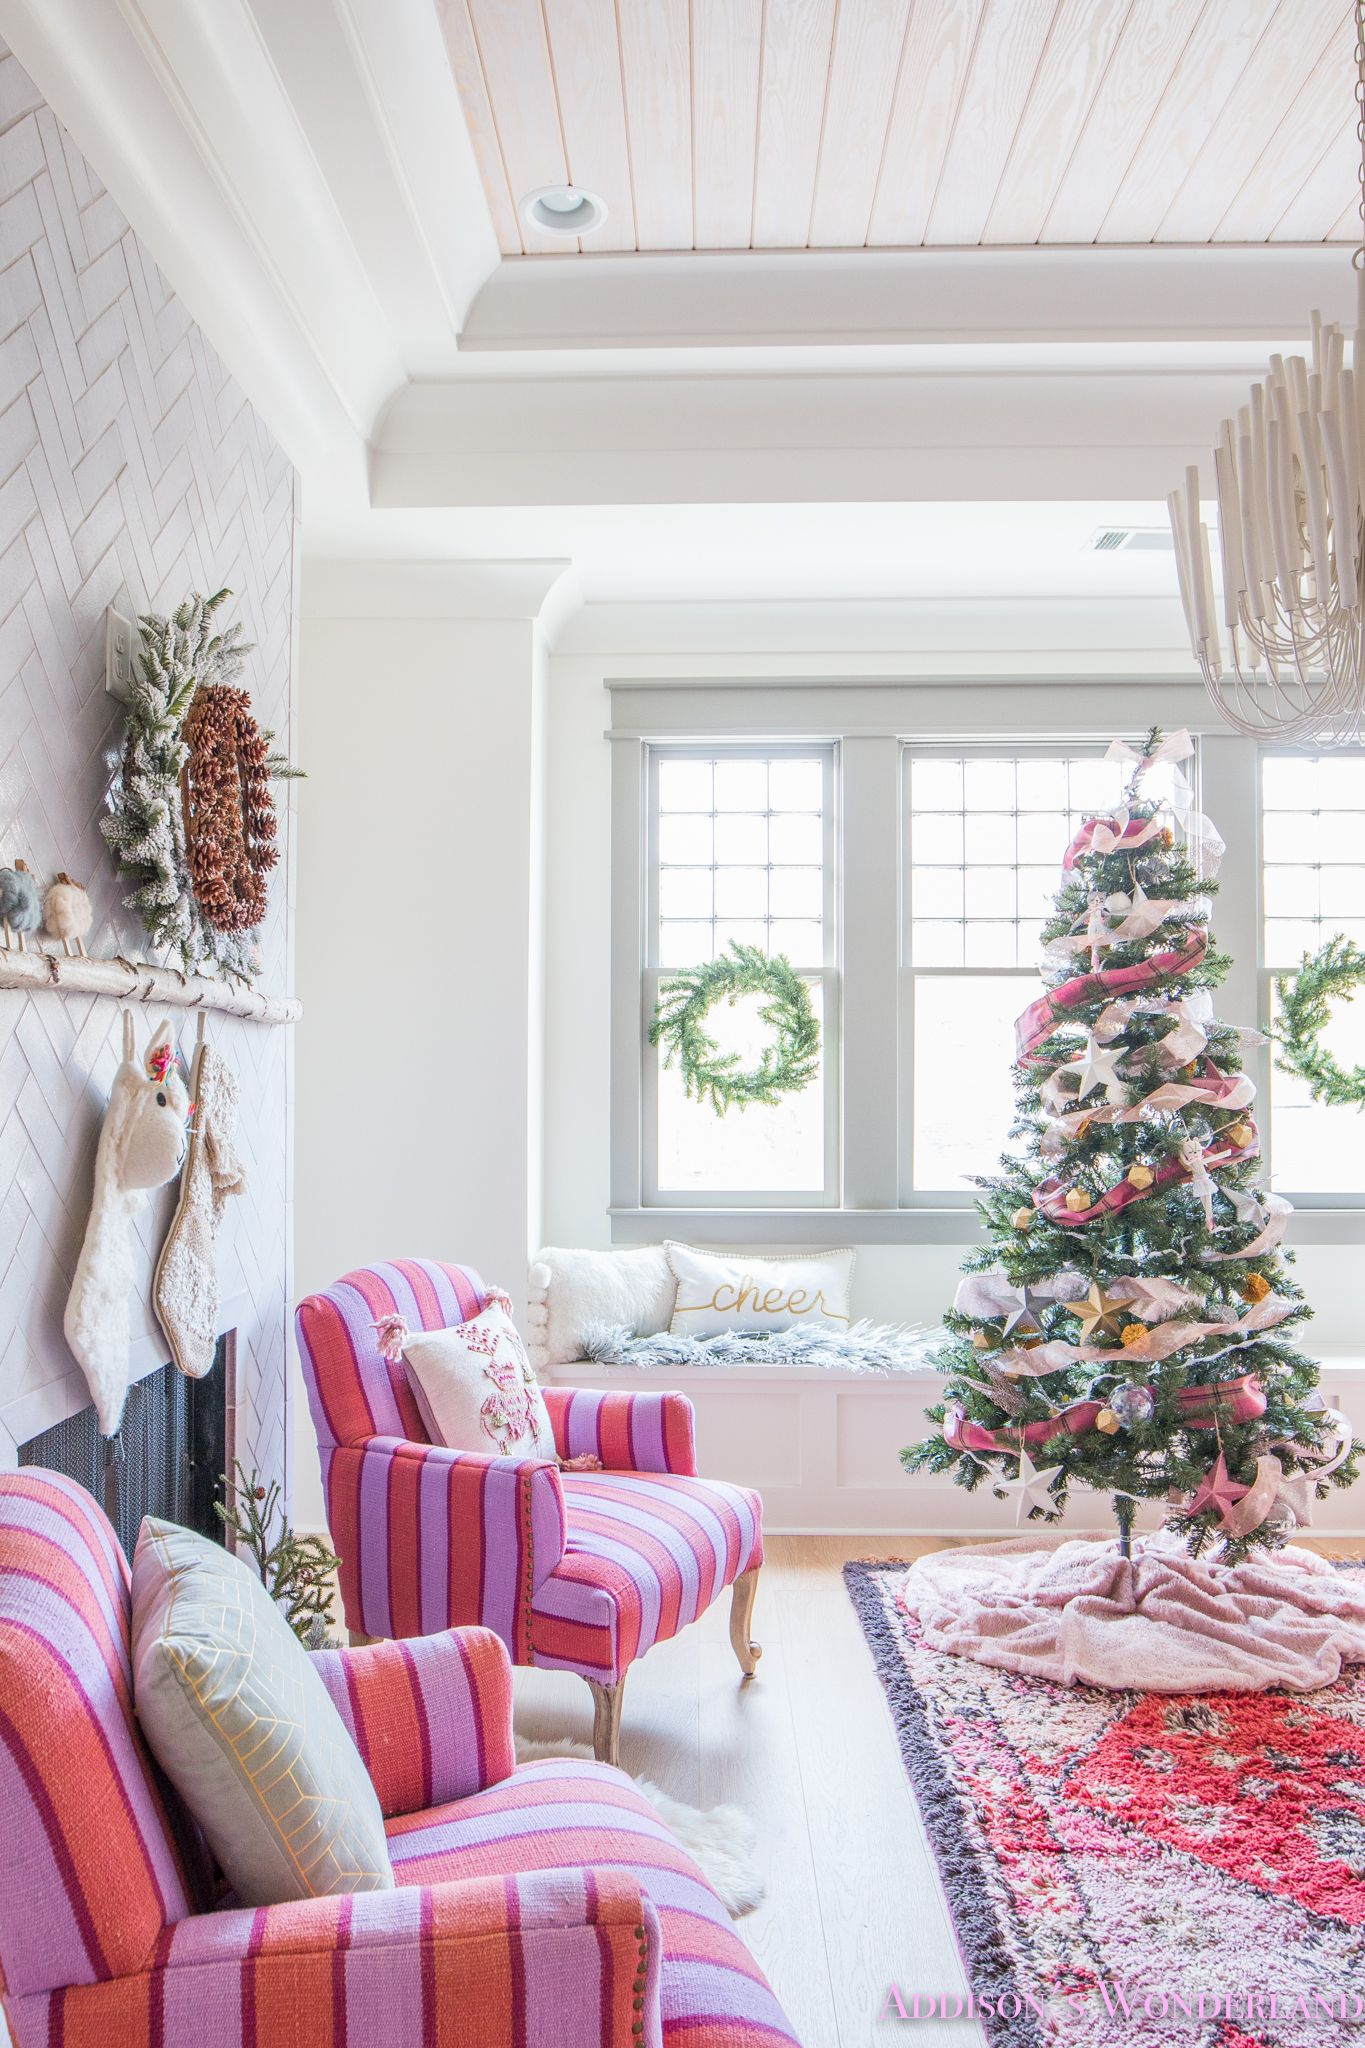 Our Festive & Colorful Christmas Holiday Kid's Playroom Tour